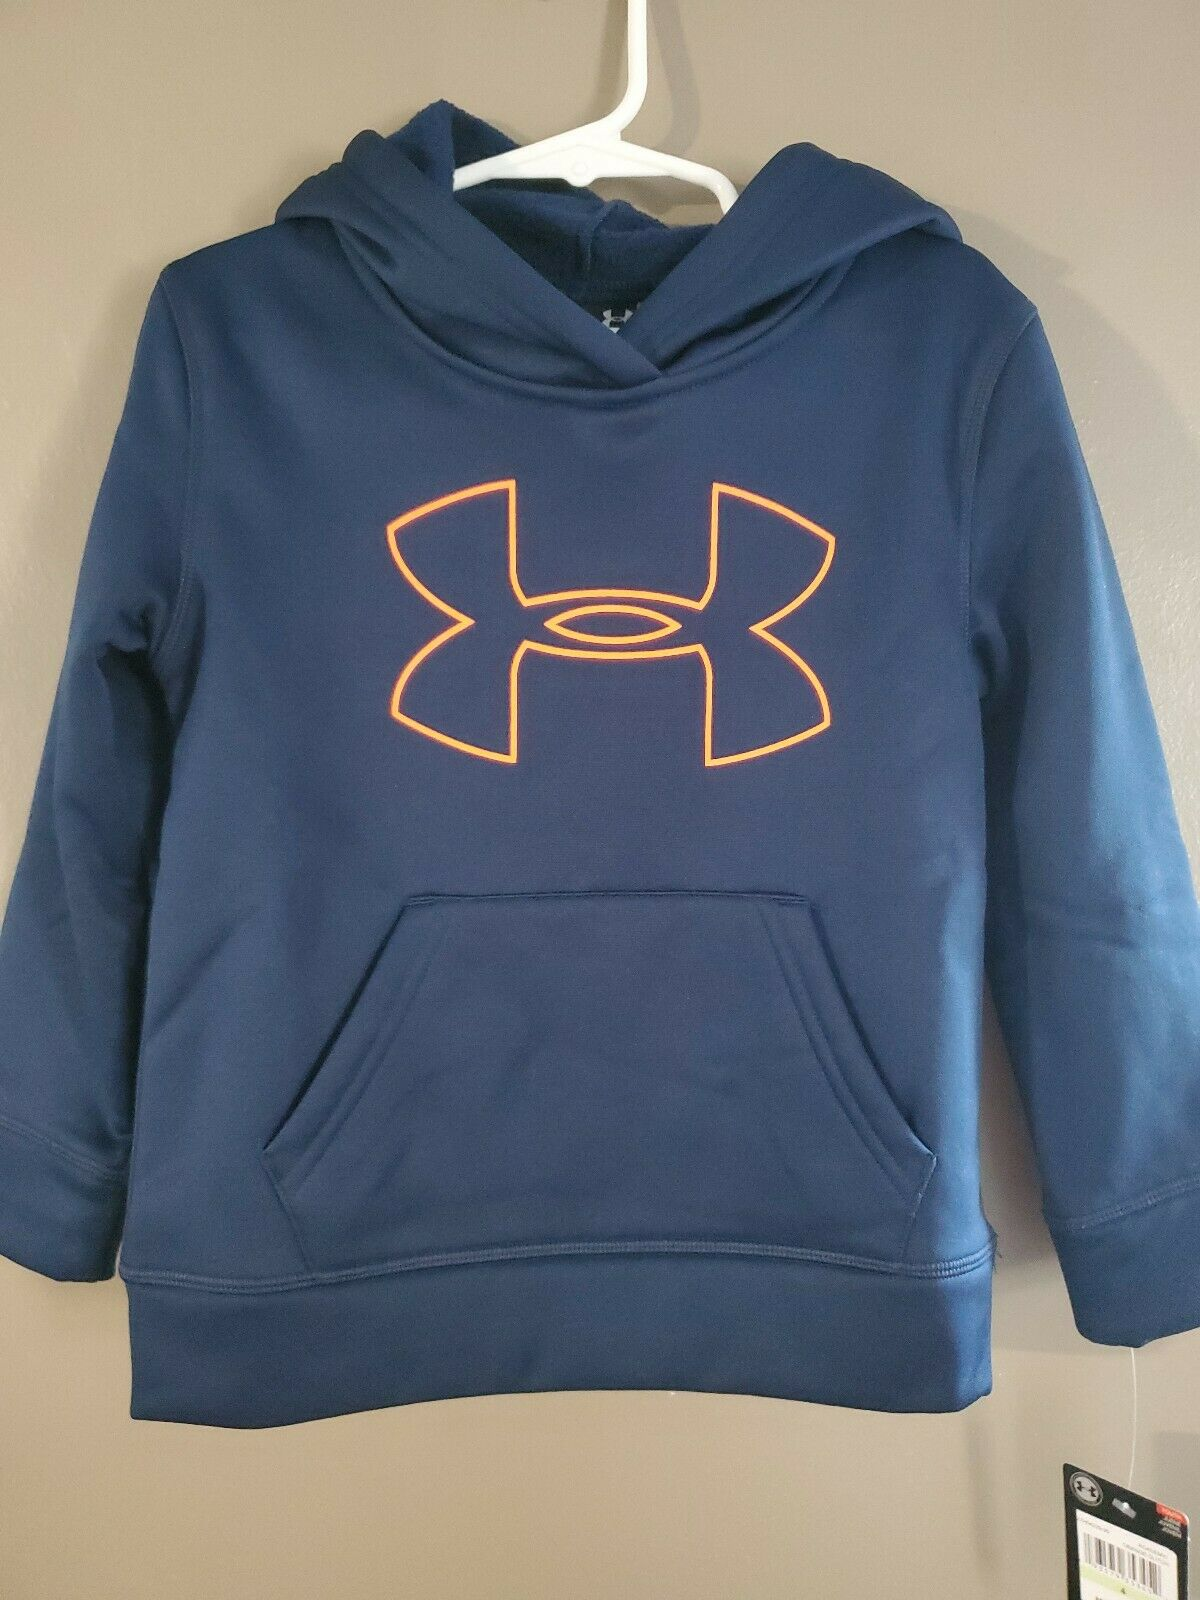 Boys Kids Youth UNDER ARMOUR Pullover Hoodie NEW Medium Steel blue Gray Neon